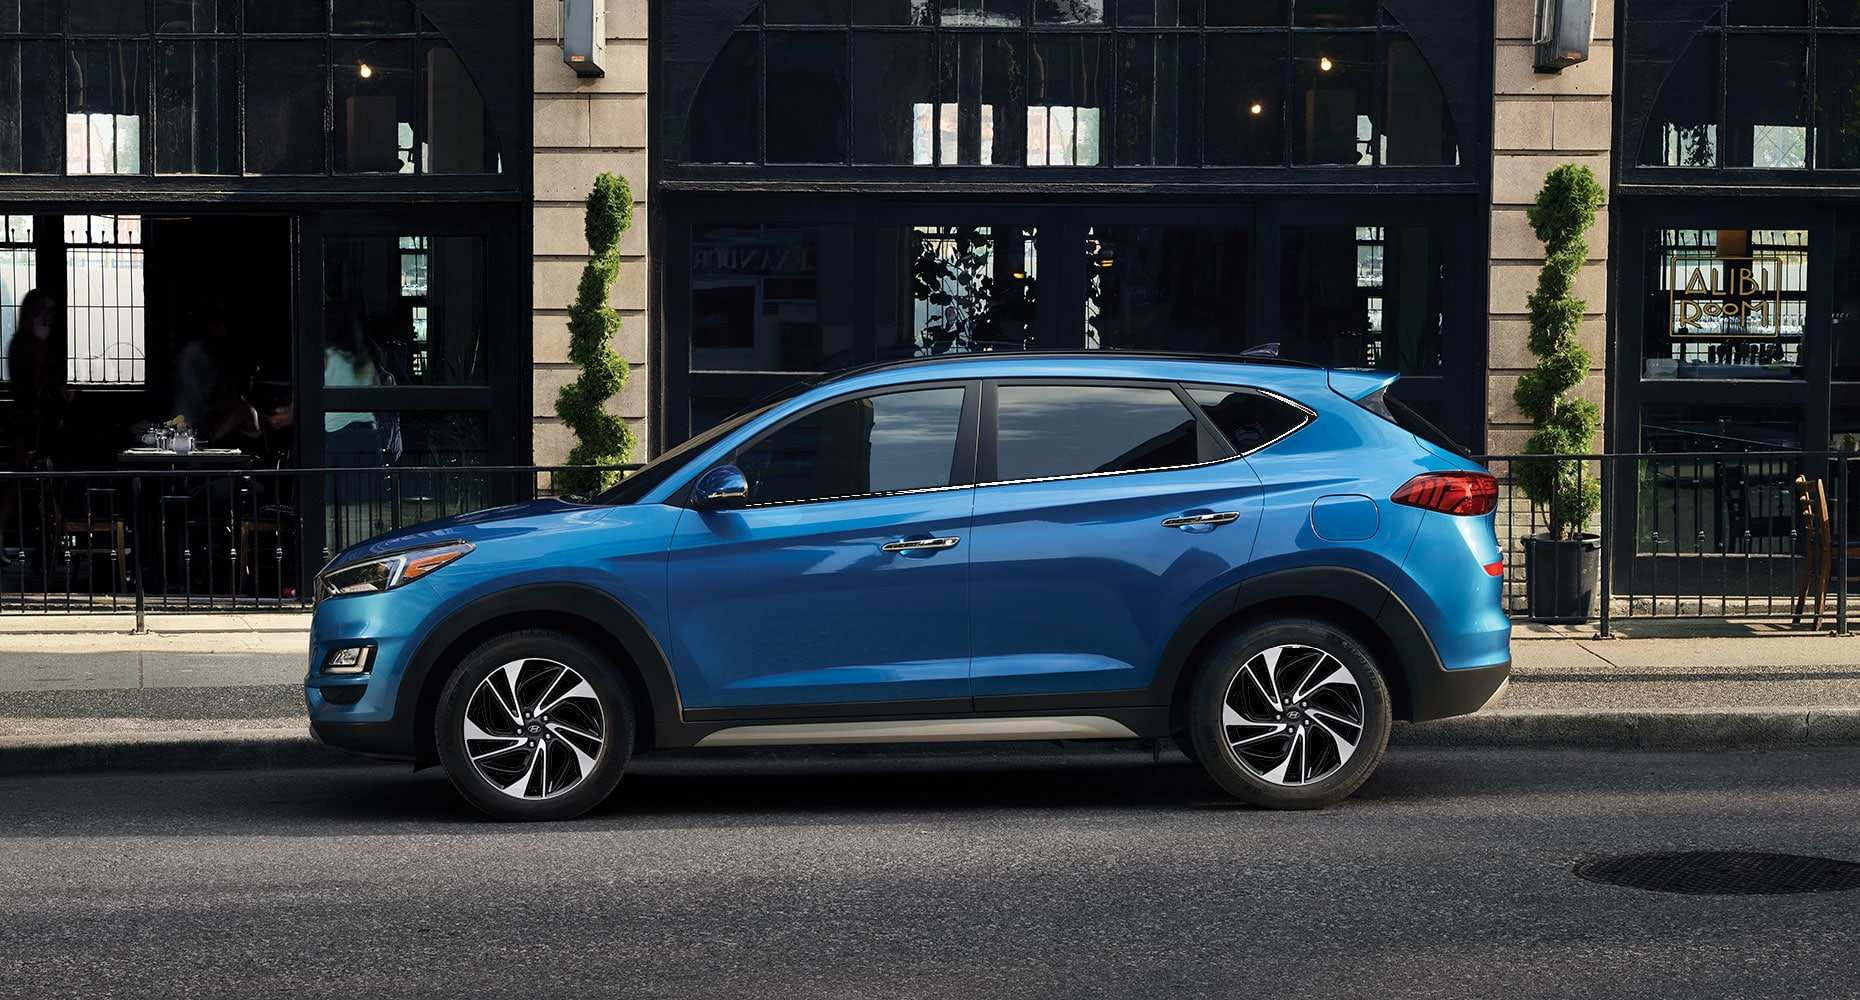 37 Best Review New Hyundai Tucson 2020 Youtube Prices by New Hyundai Tucson 2020 Youtube